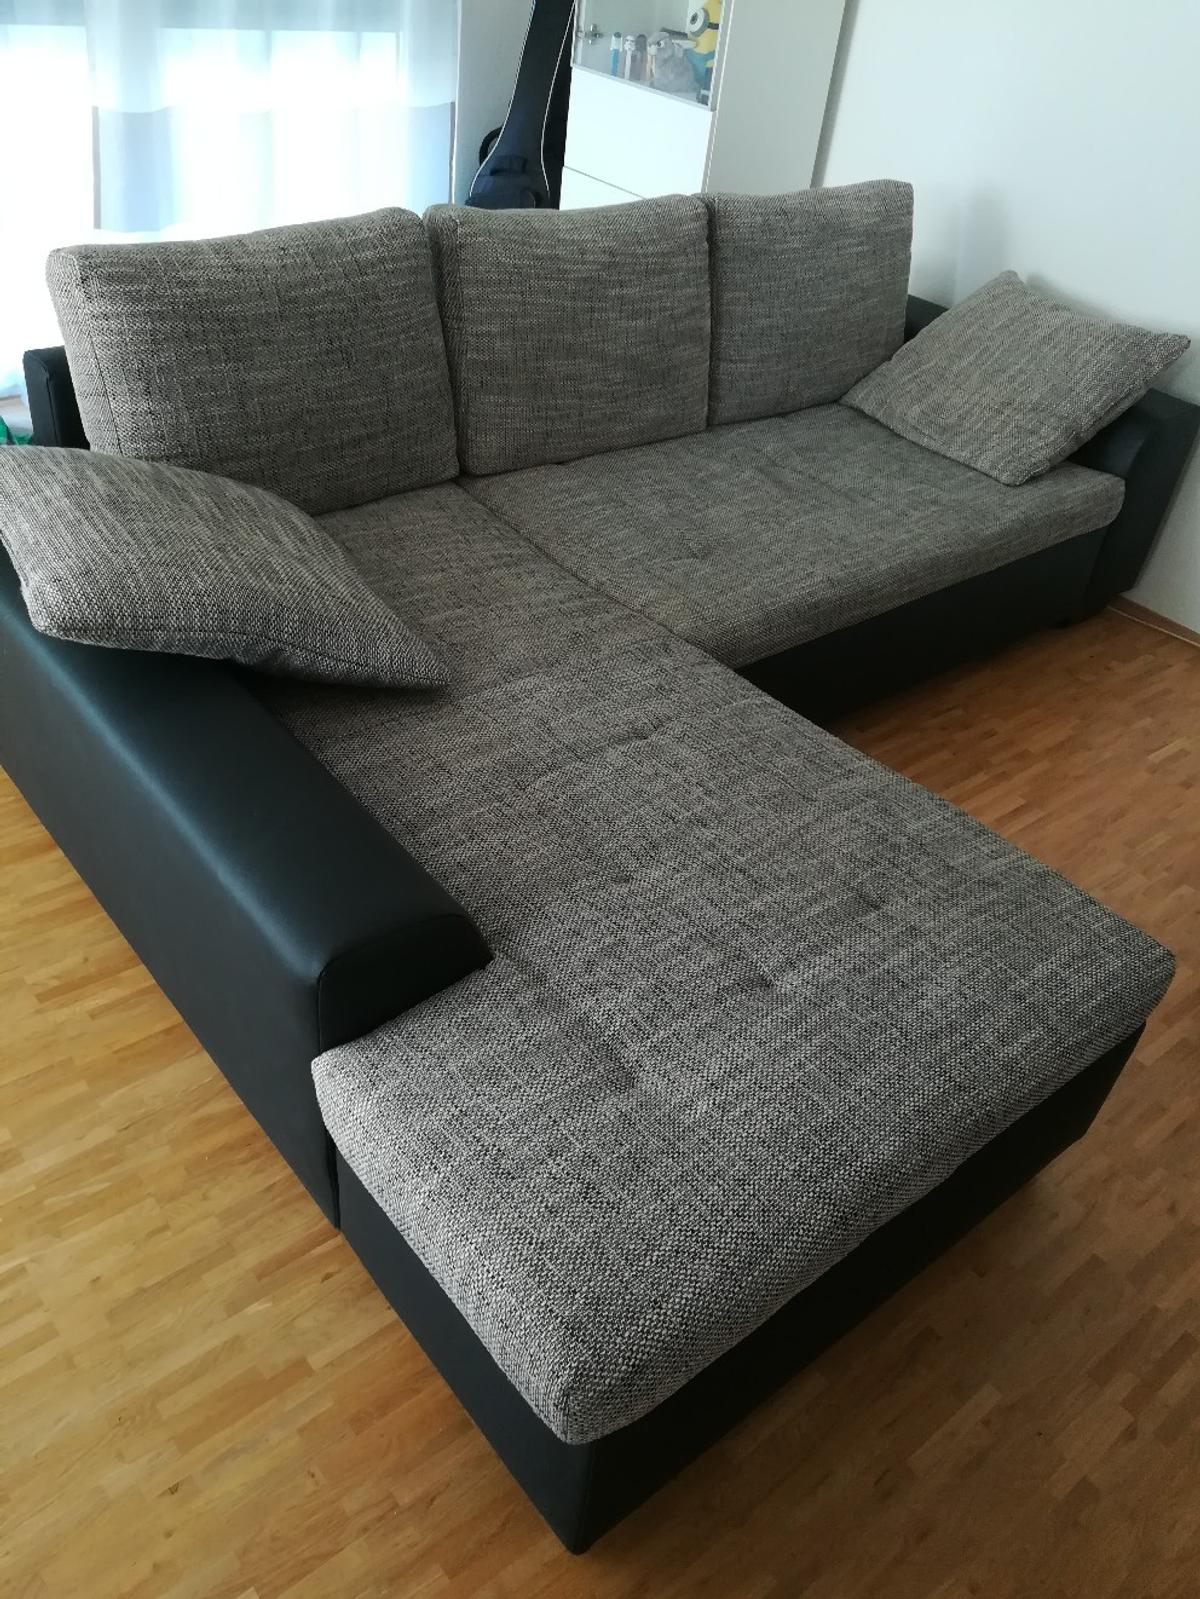 Modernes Schlafsofa Mit Bettkasten In 76287 Rheinstetten For 50 00 For Sale Shpock